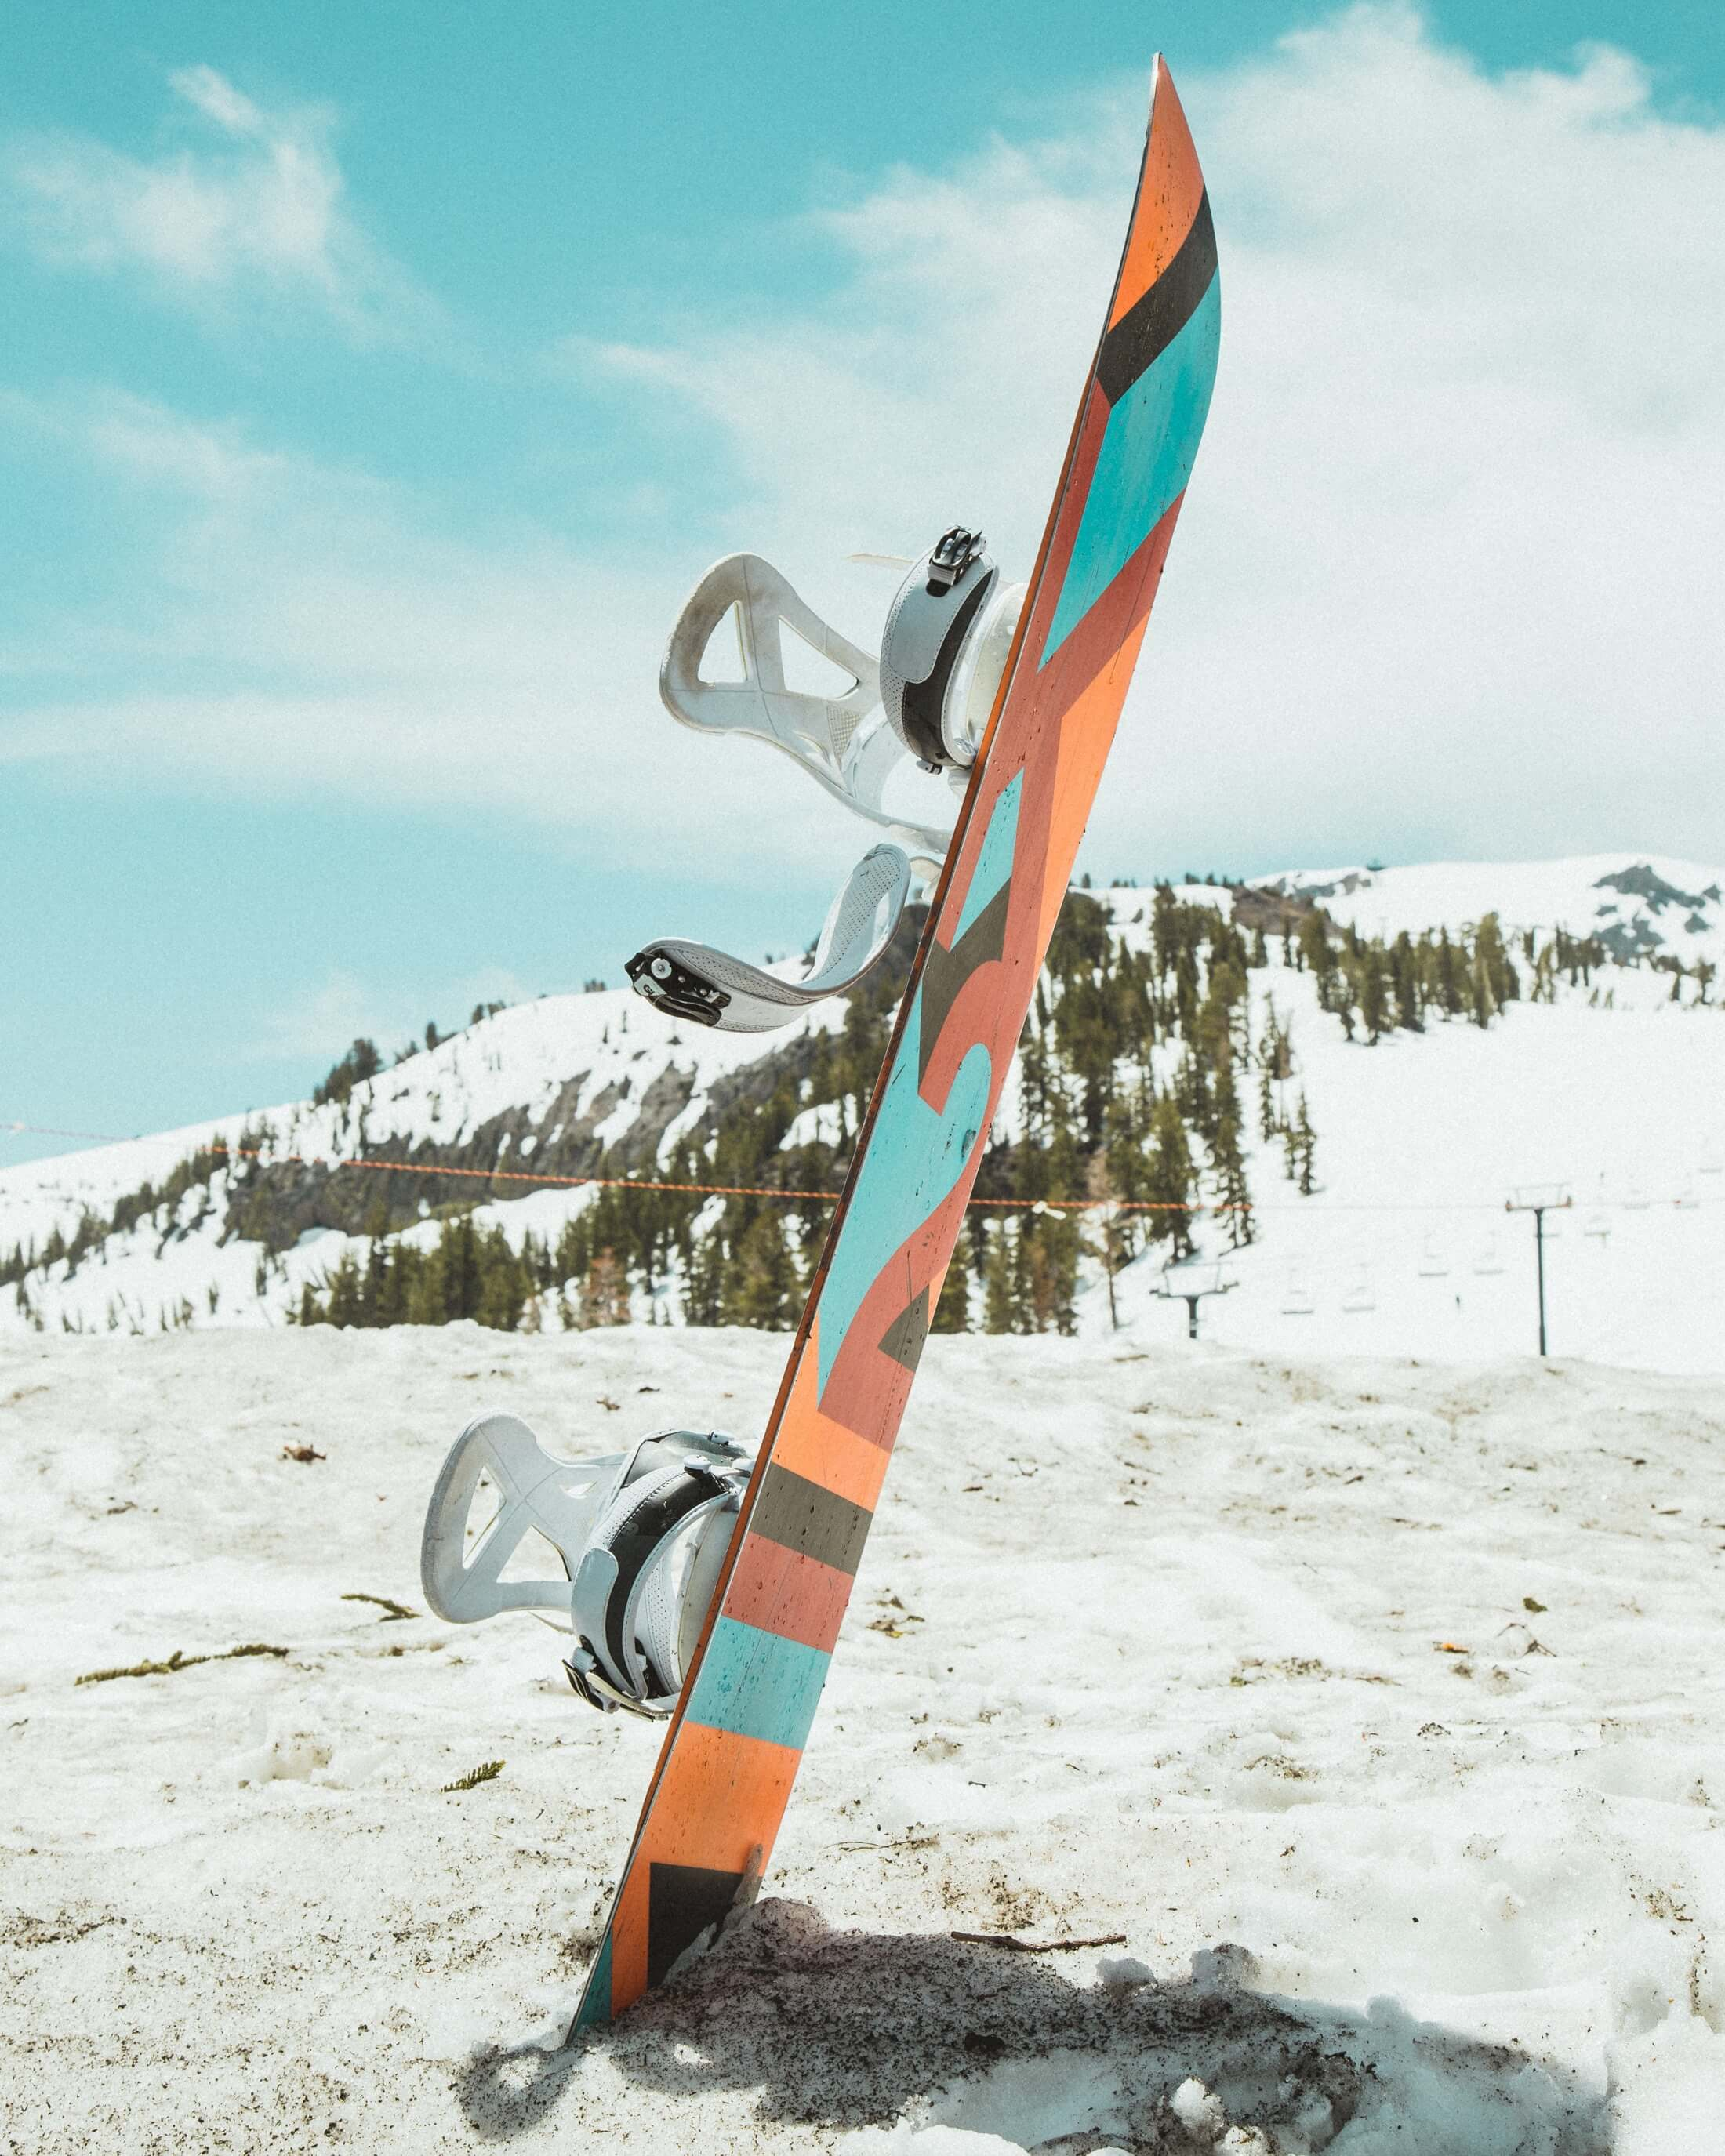 an example of good ski rules for good ski etiquette